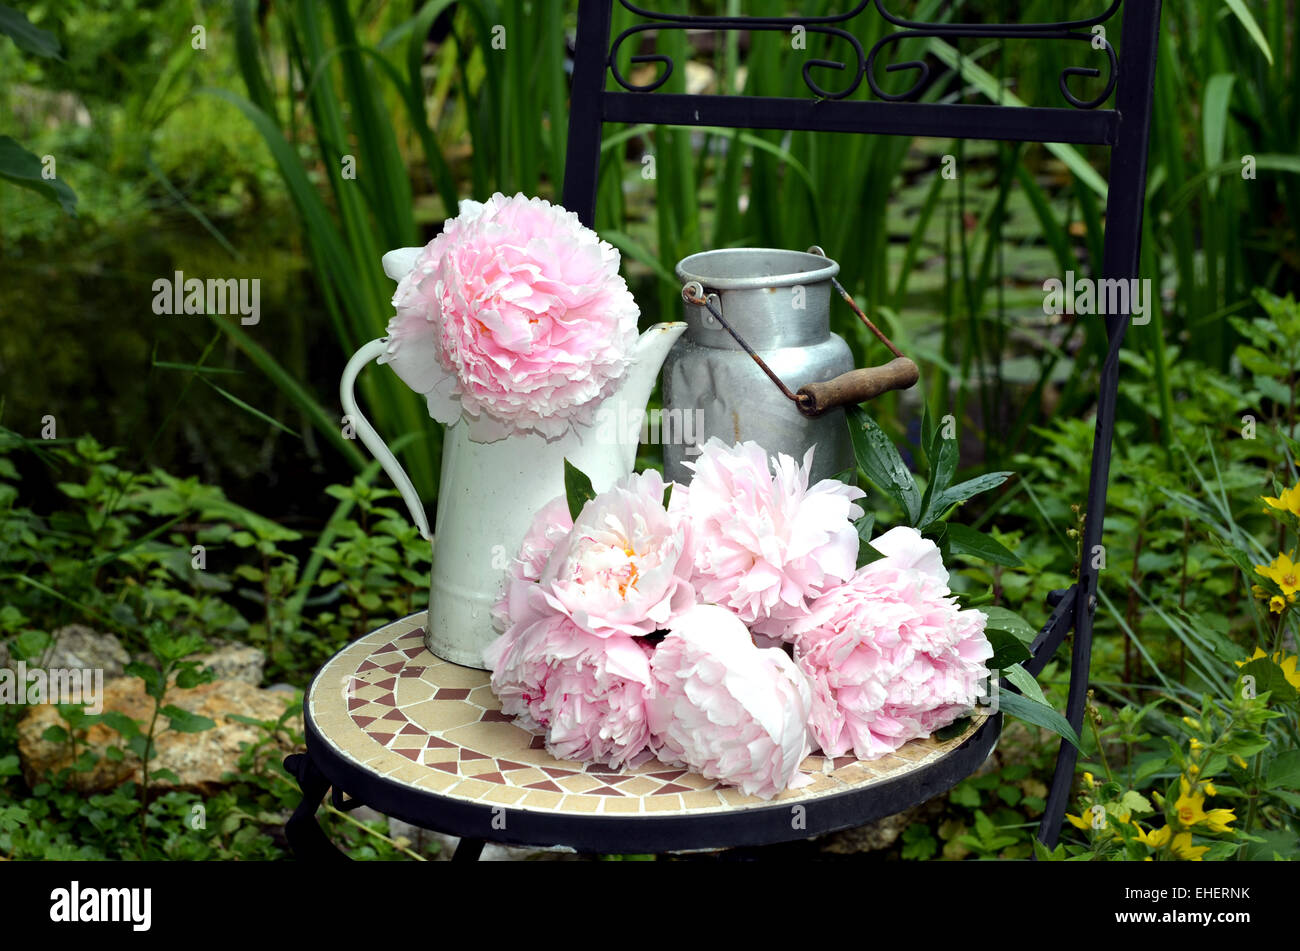 shabby chic blumen garten pfingstrosen stockfoto bild. Black Bedroom Furniture Sets. Home Design Ideas